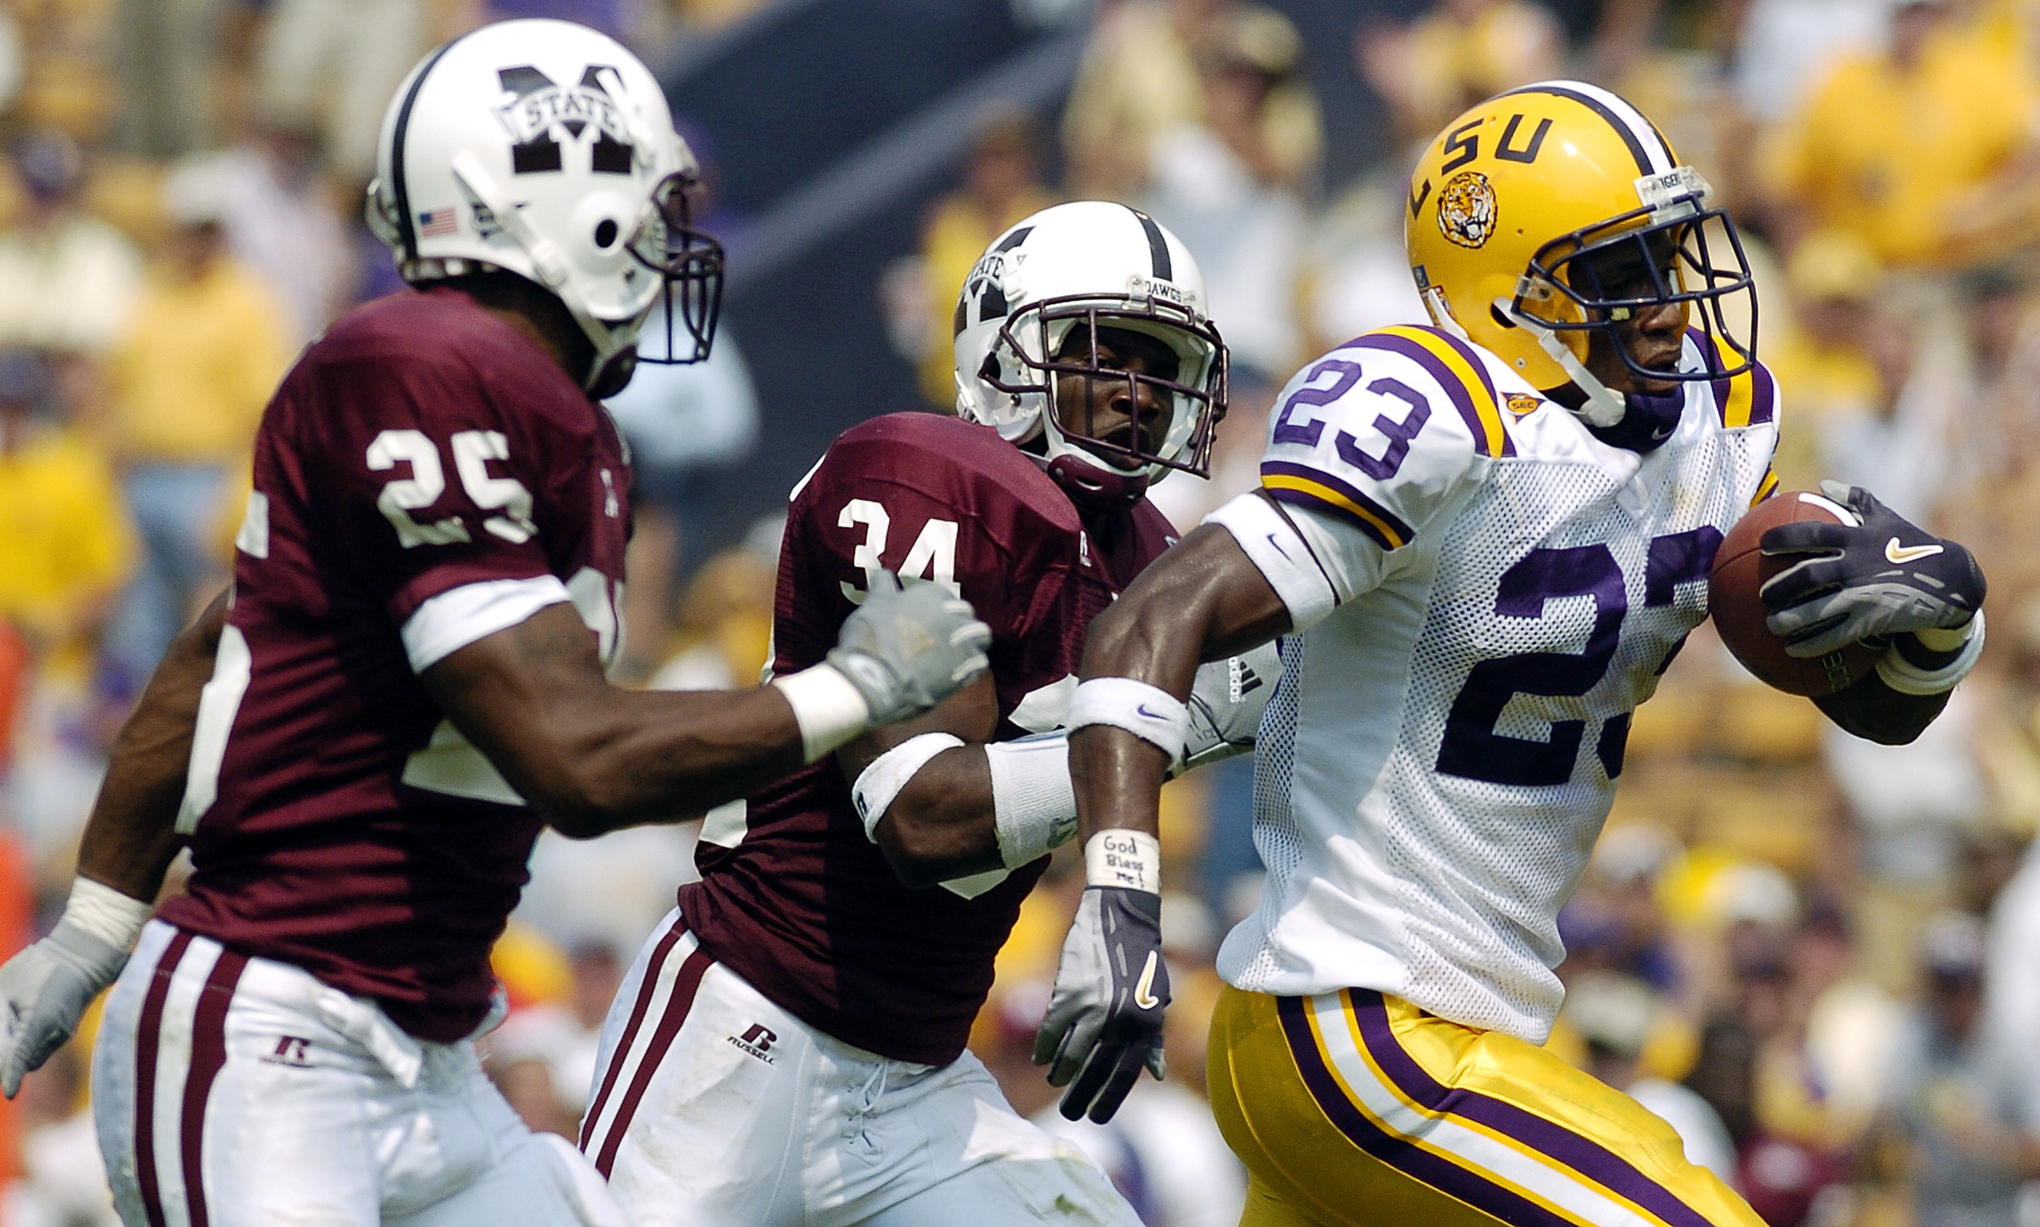 Xavier Carter #23 of Louisiana State University is chased by Slovakia Griffith #25 and Jeramie Johnson #34 of Mississippi State